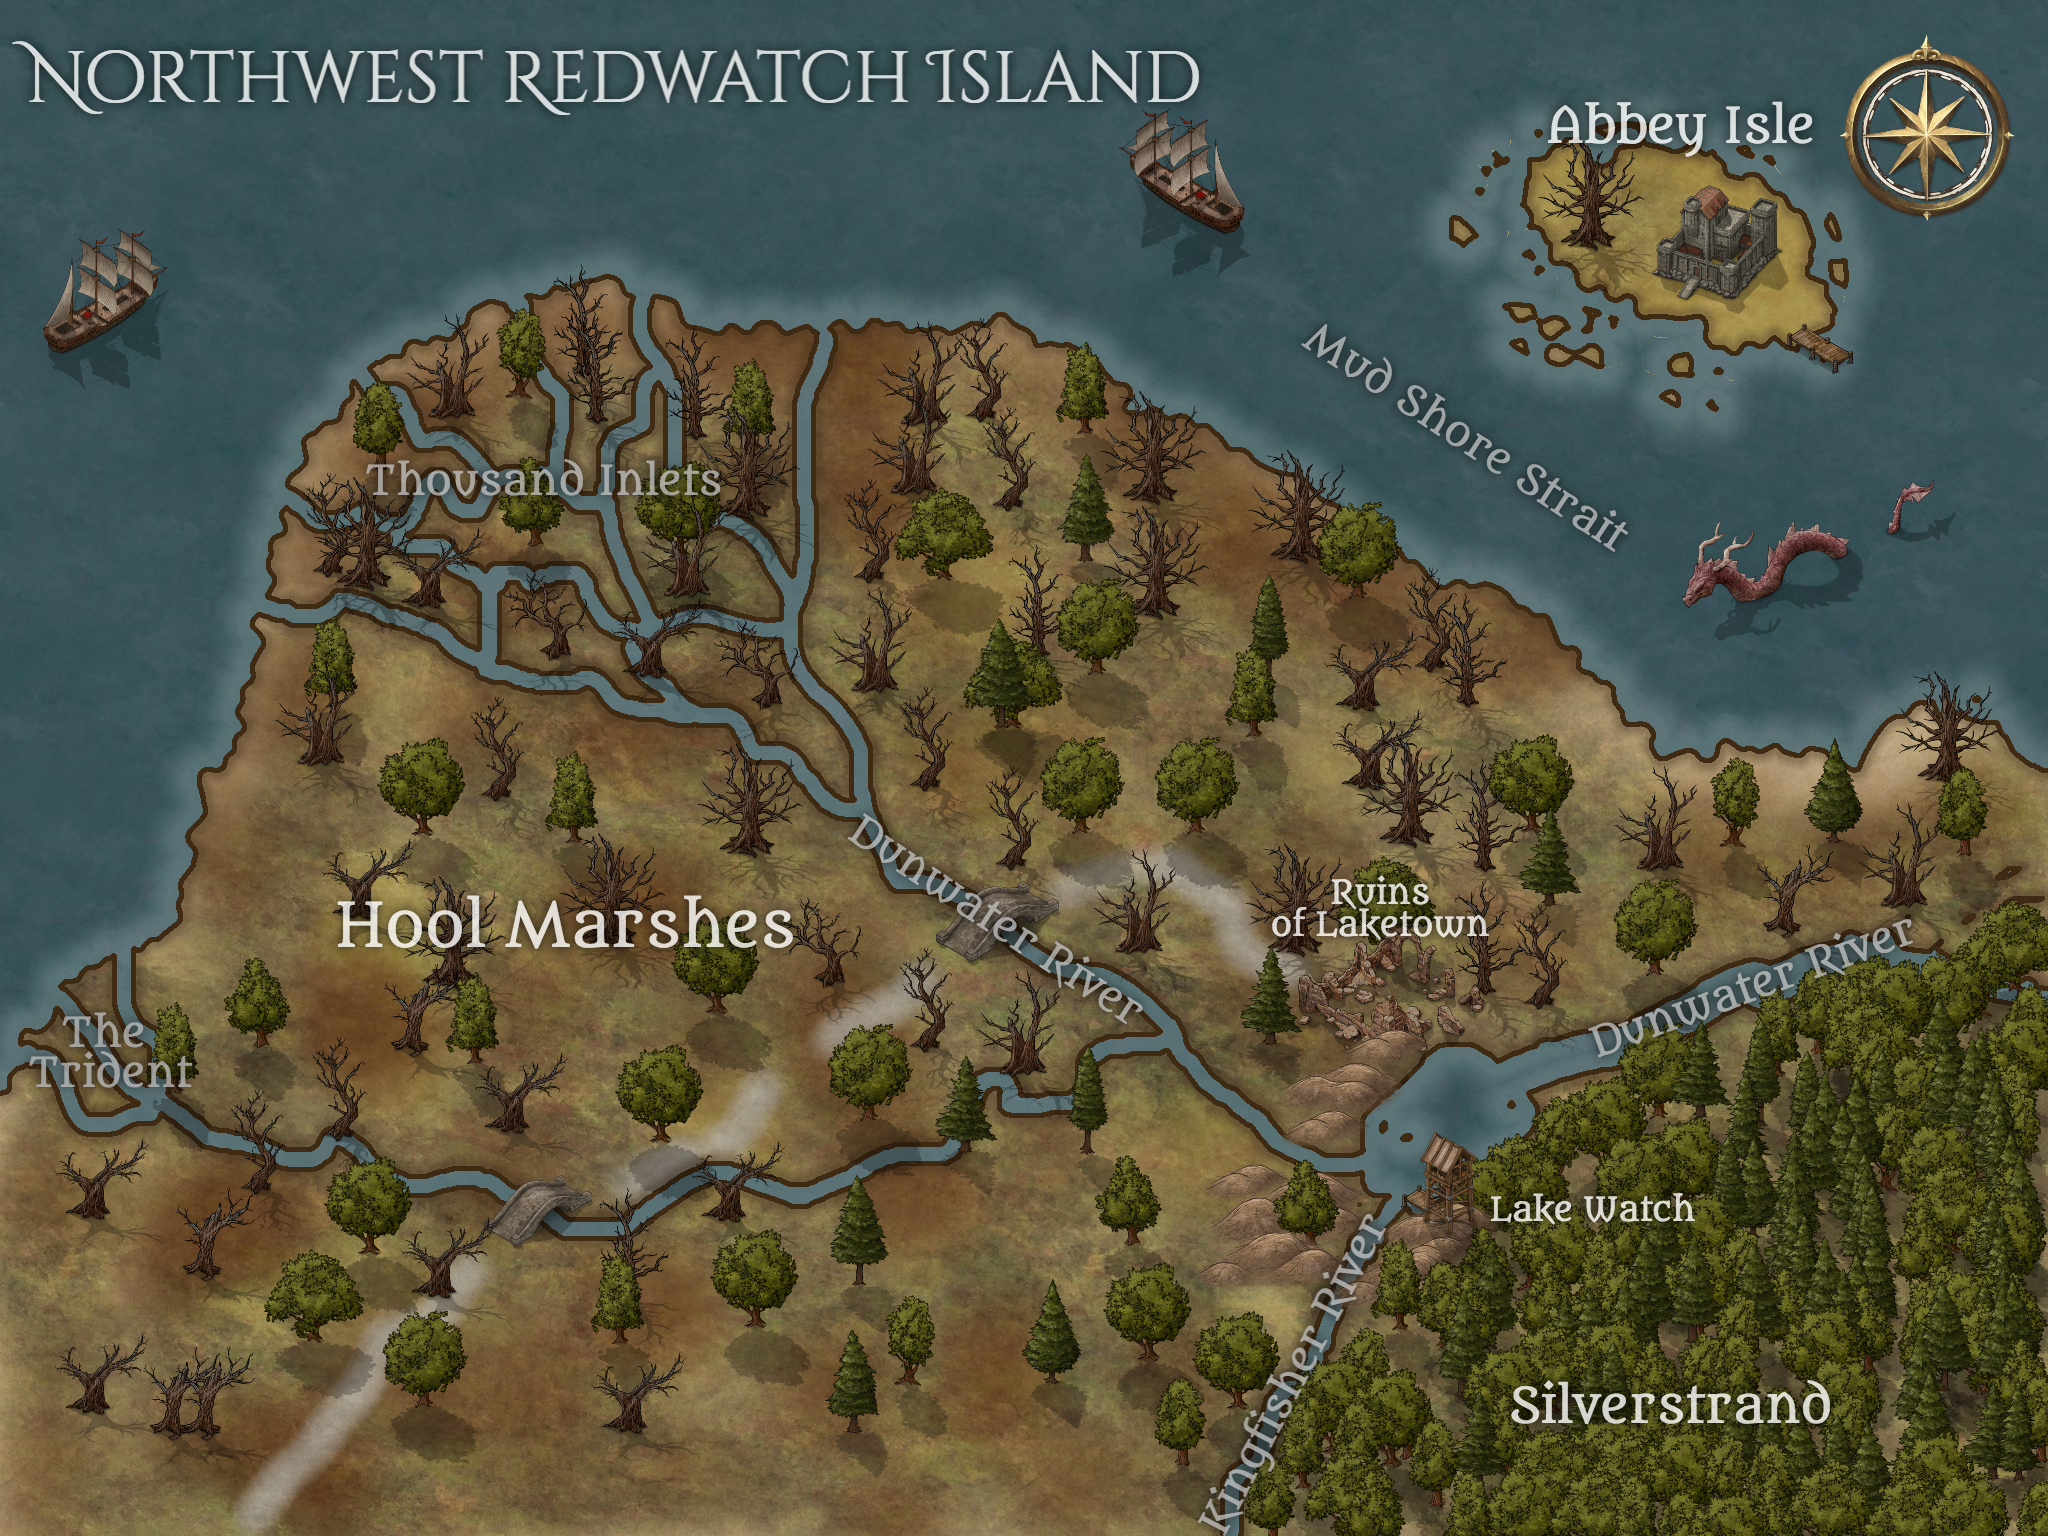 North West Redwatch Island